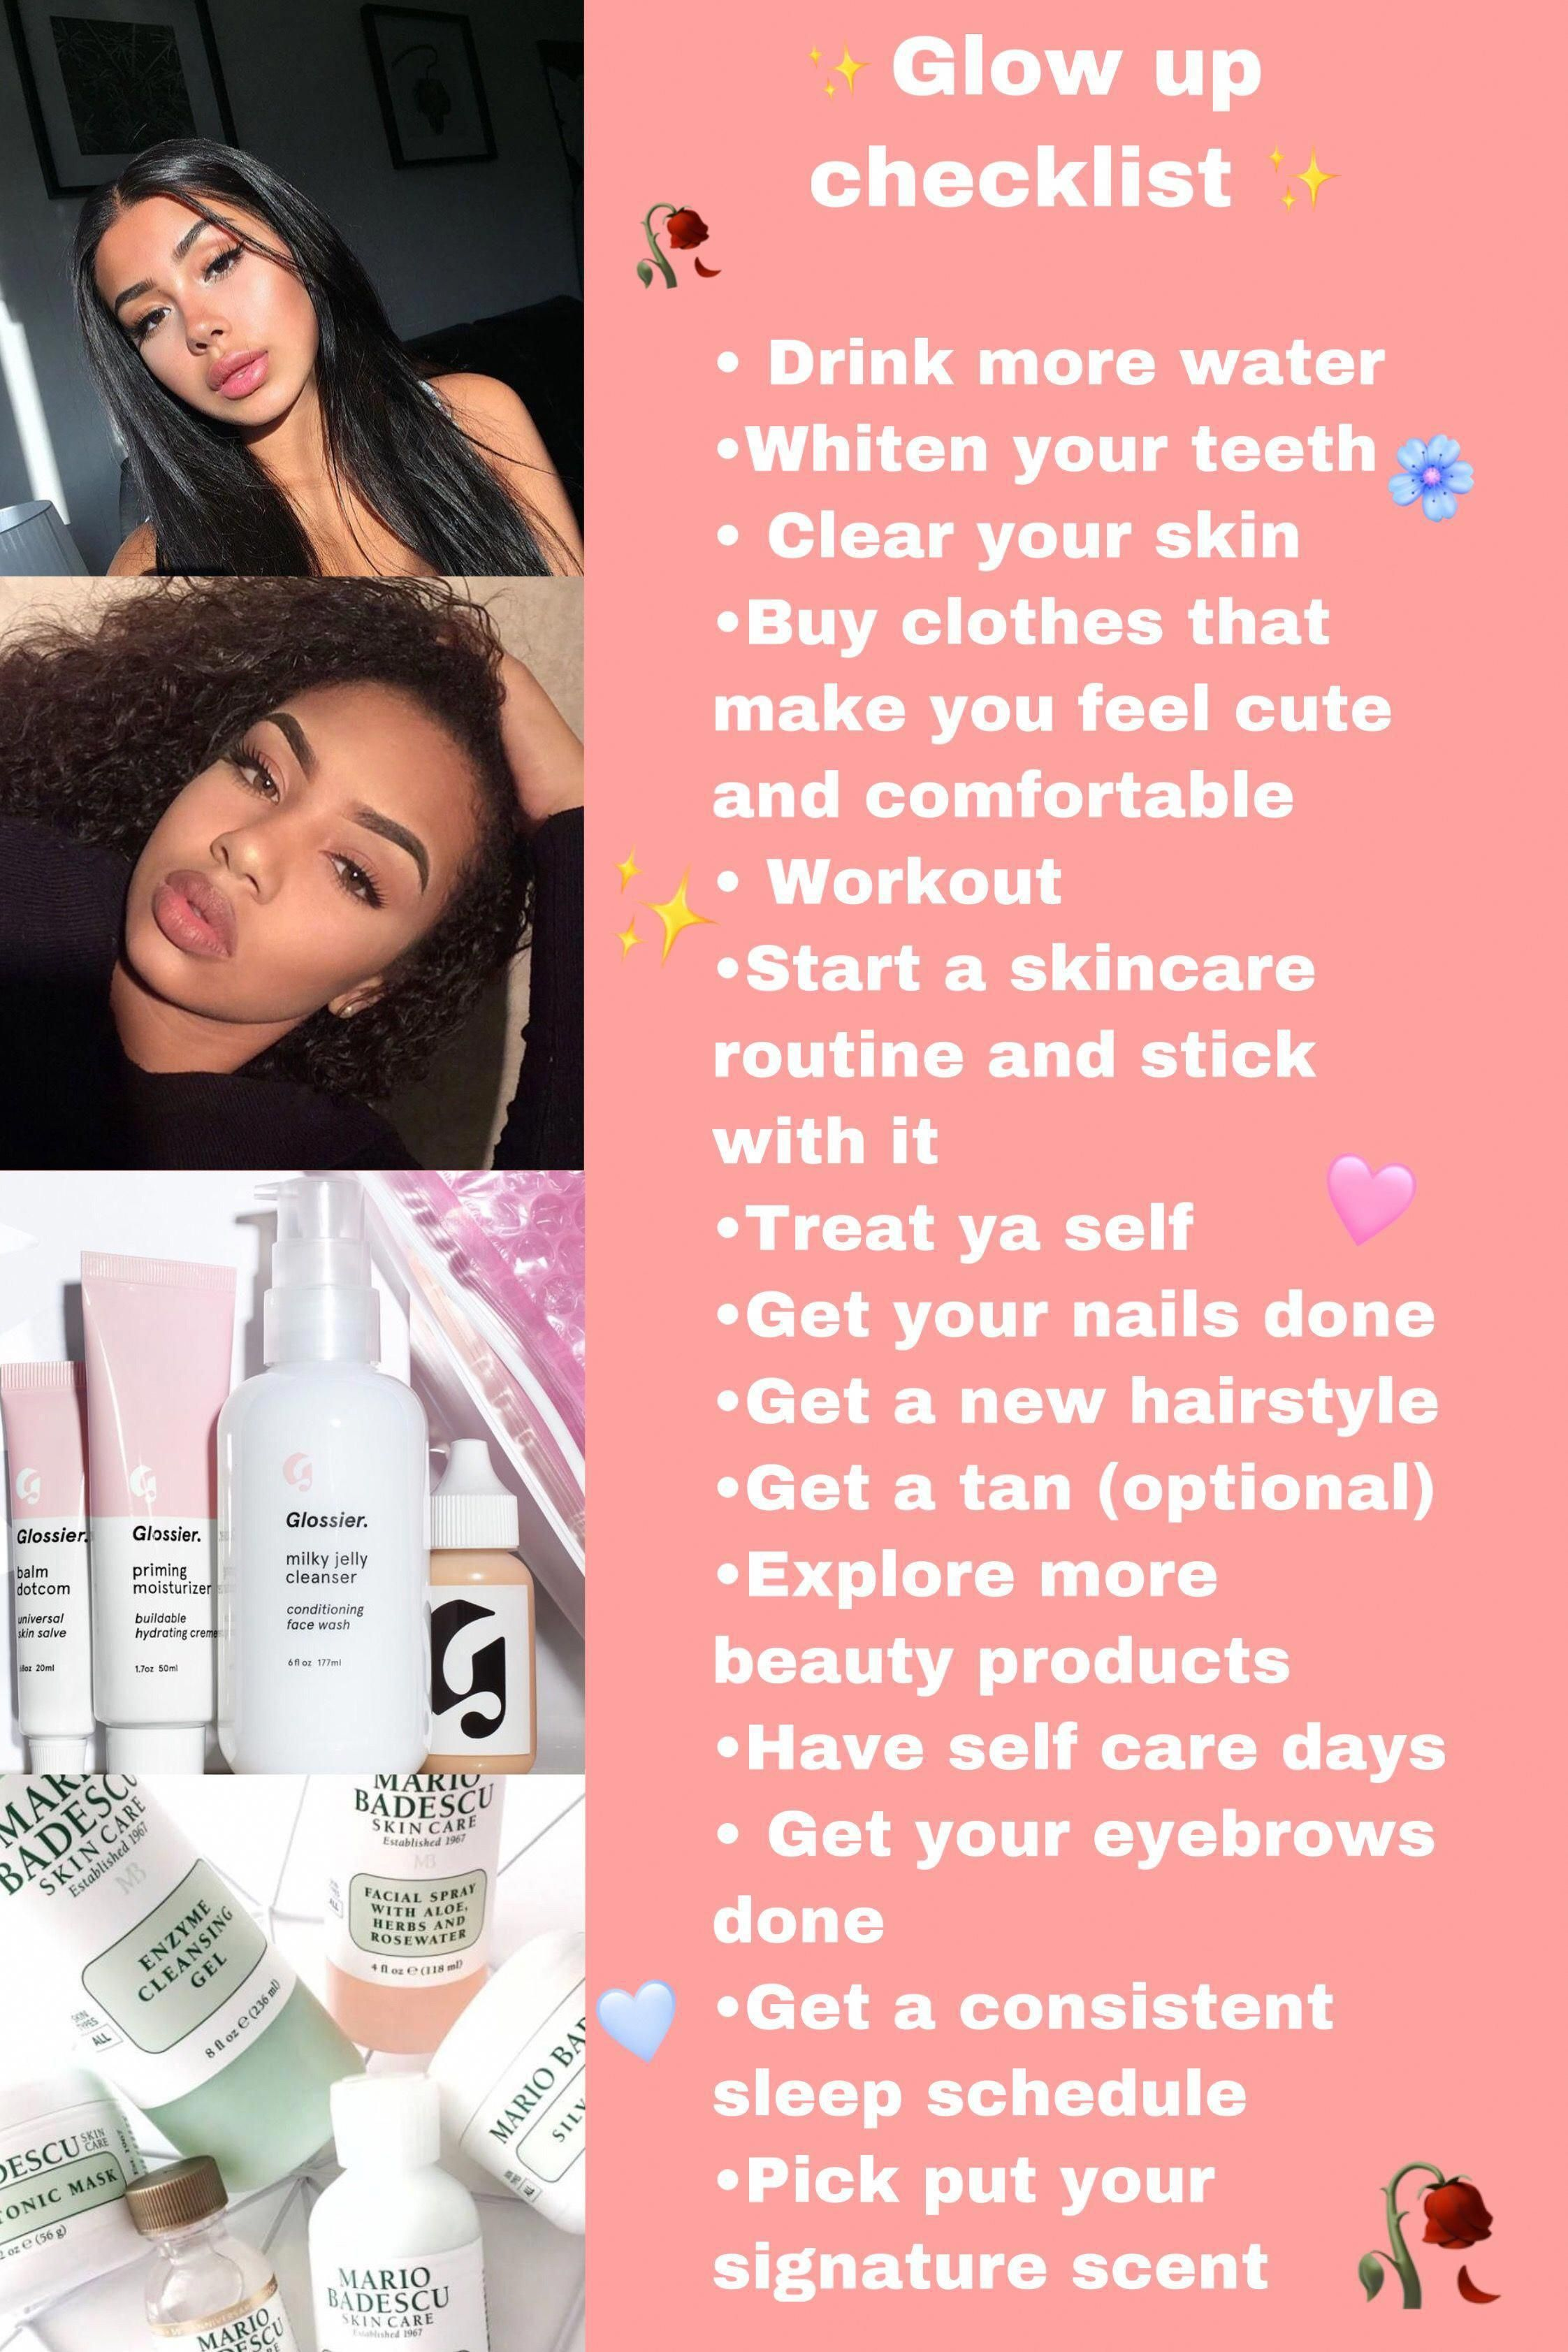 Combination Skin Care Tips Glowing Face How To Take Care Of Skin Everyday 20190719 Haircare In 2020 Combination Skin Care Clear Skin Tips Body Skin Care